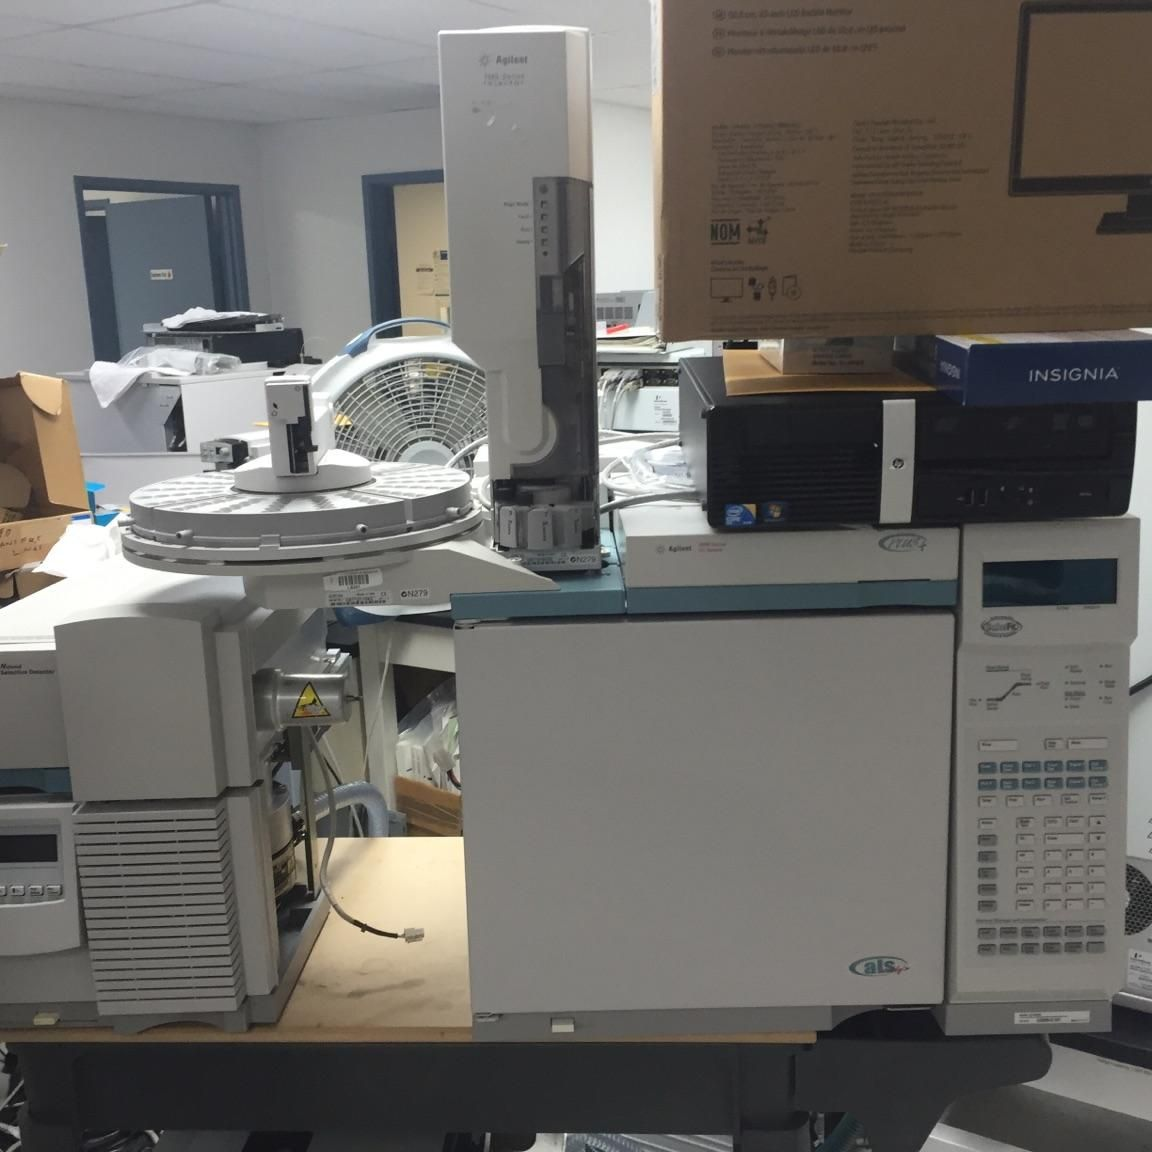 Agilent GC/MSD 6890N / 5873N Fully Refurbished.